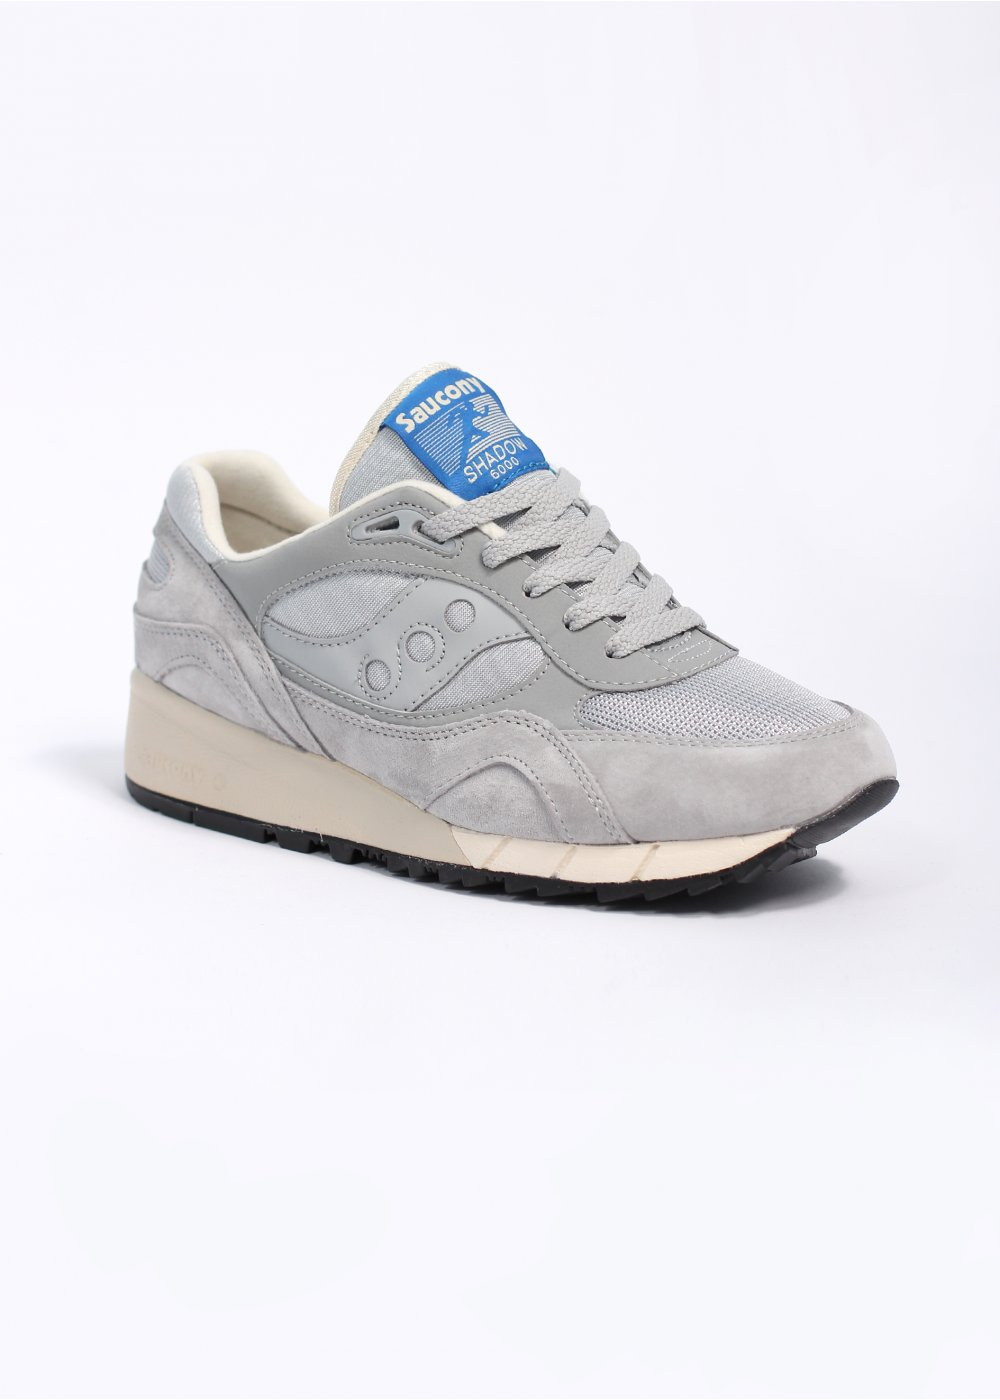 new styles da56f 43632 Saucony Shadow 6000 Premium Trainers - Grey